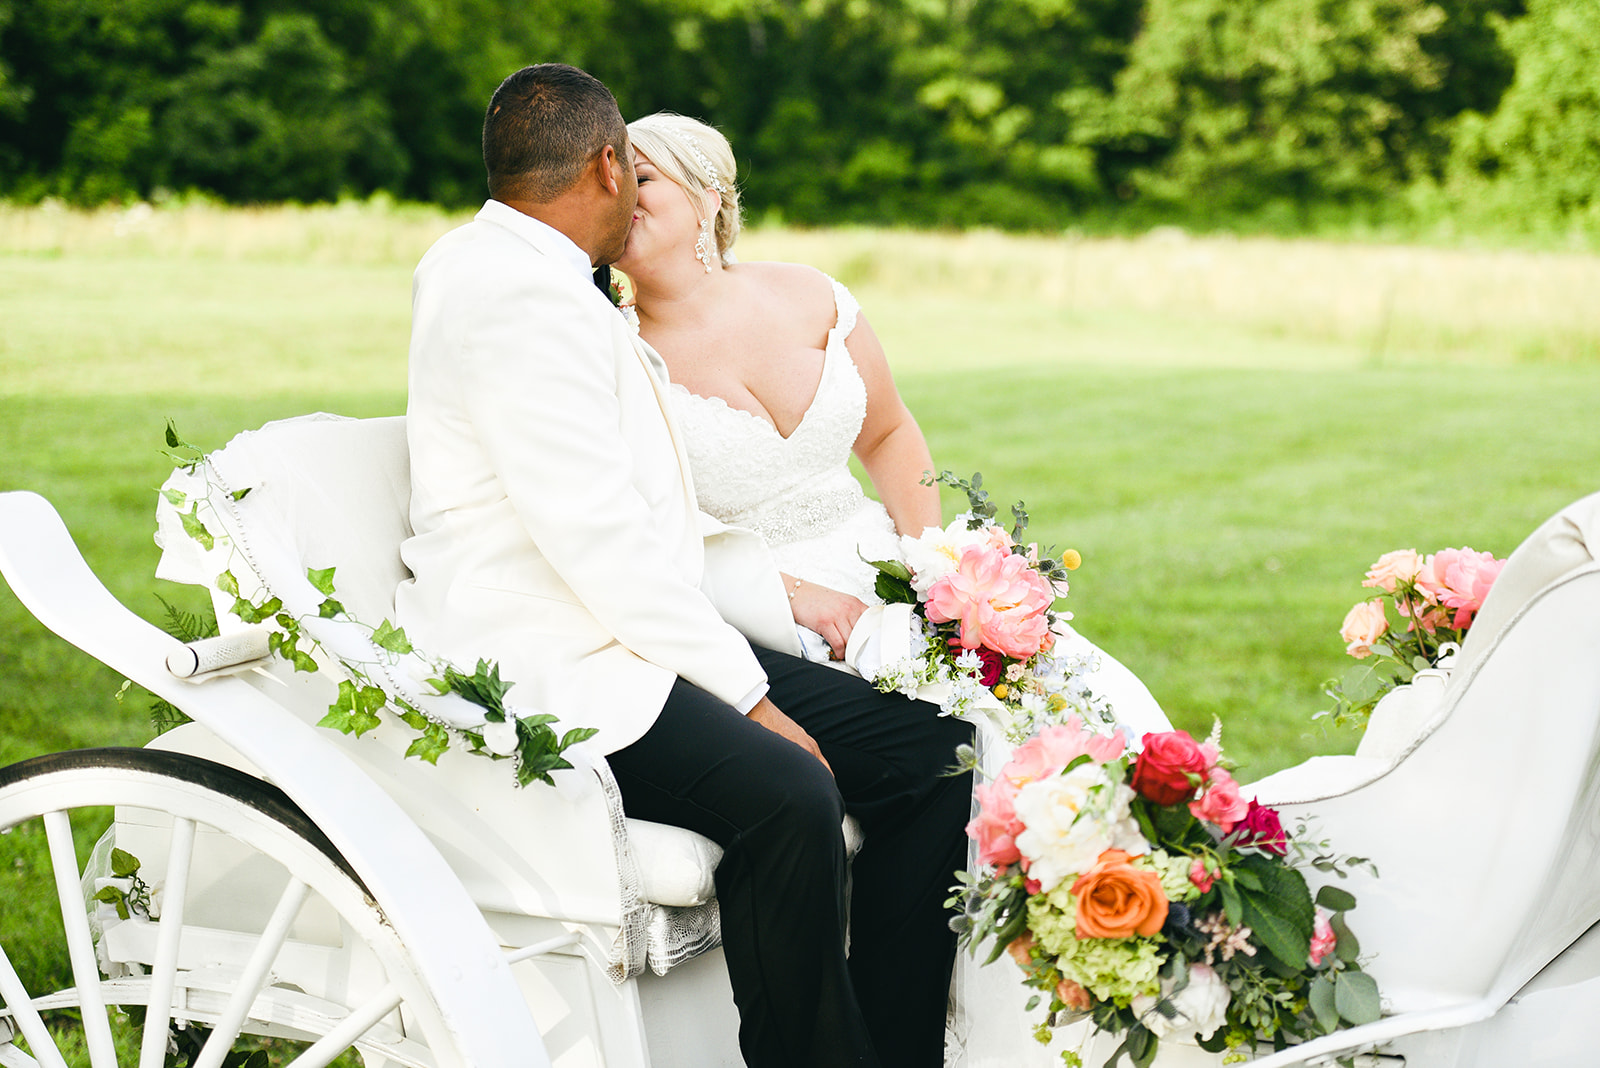 Horse carriage: Elegant Cason Cove Wedding featured on Nashville Bride Guide